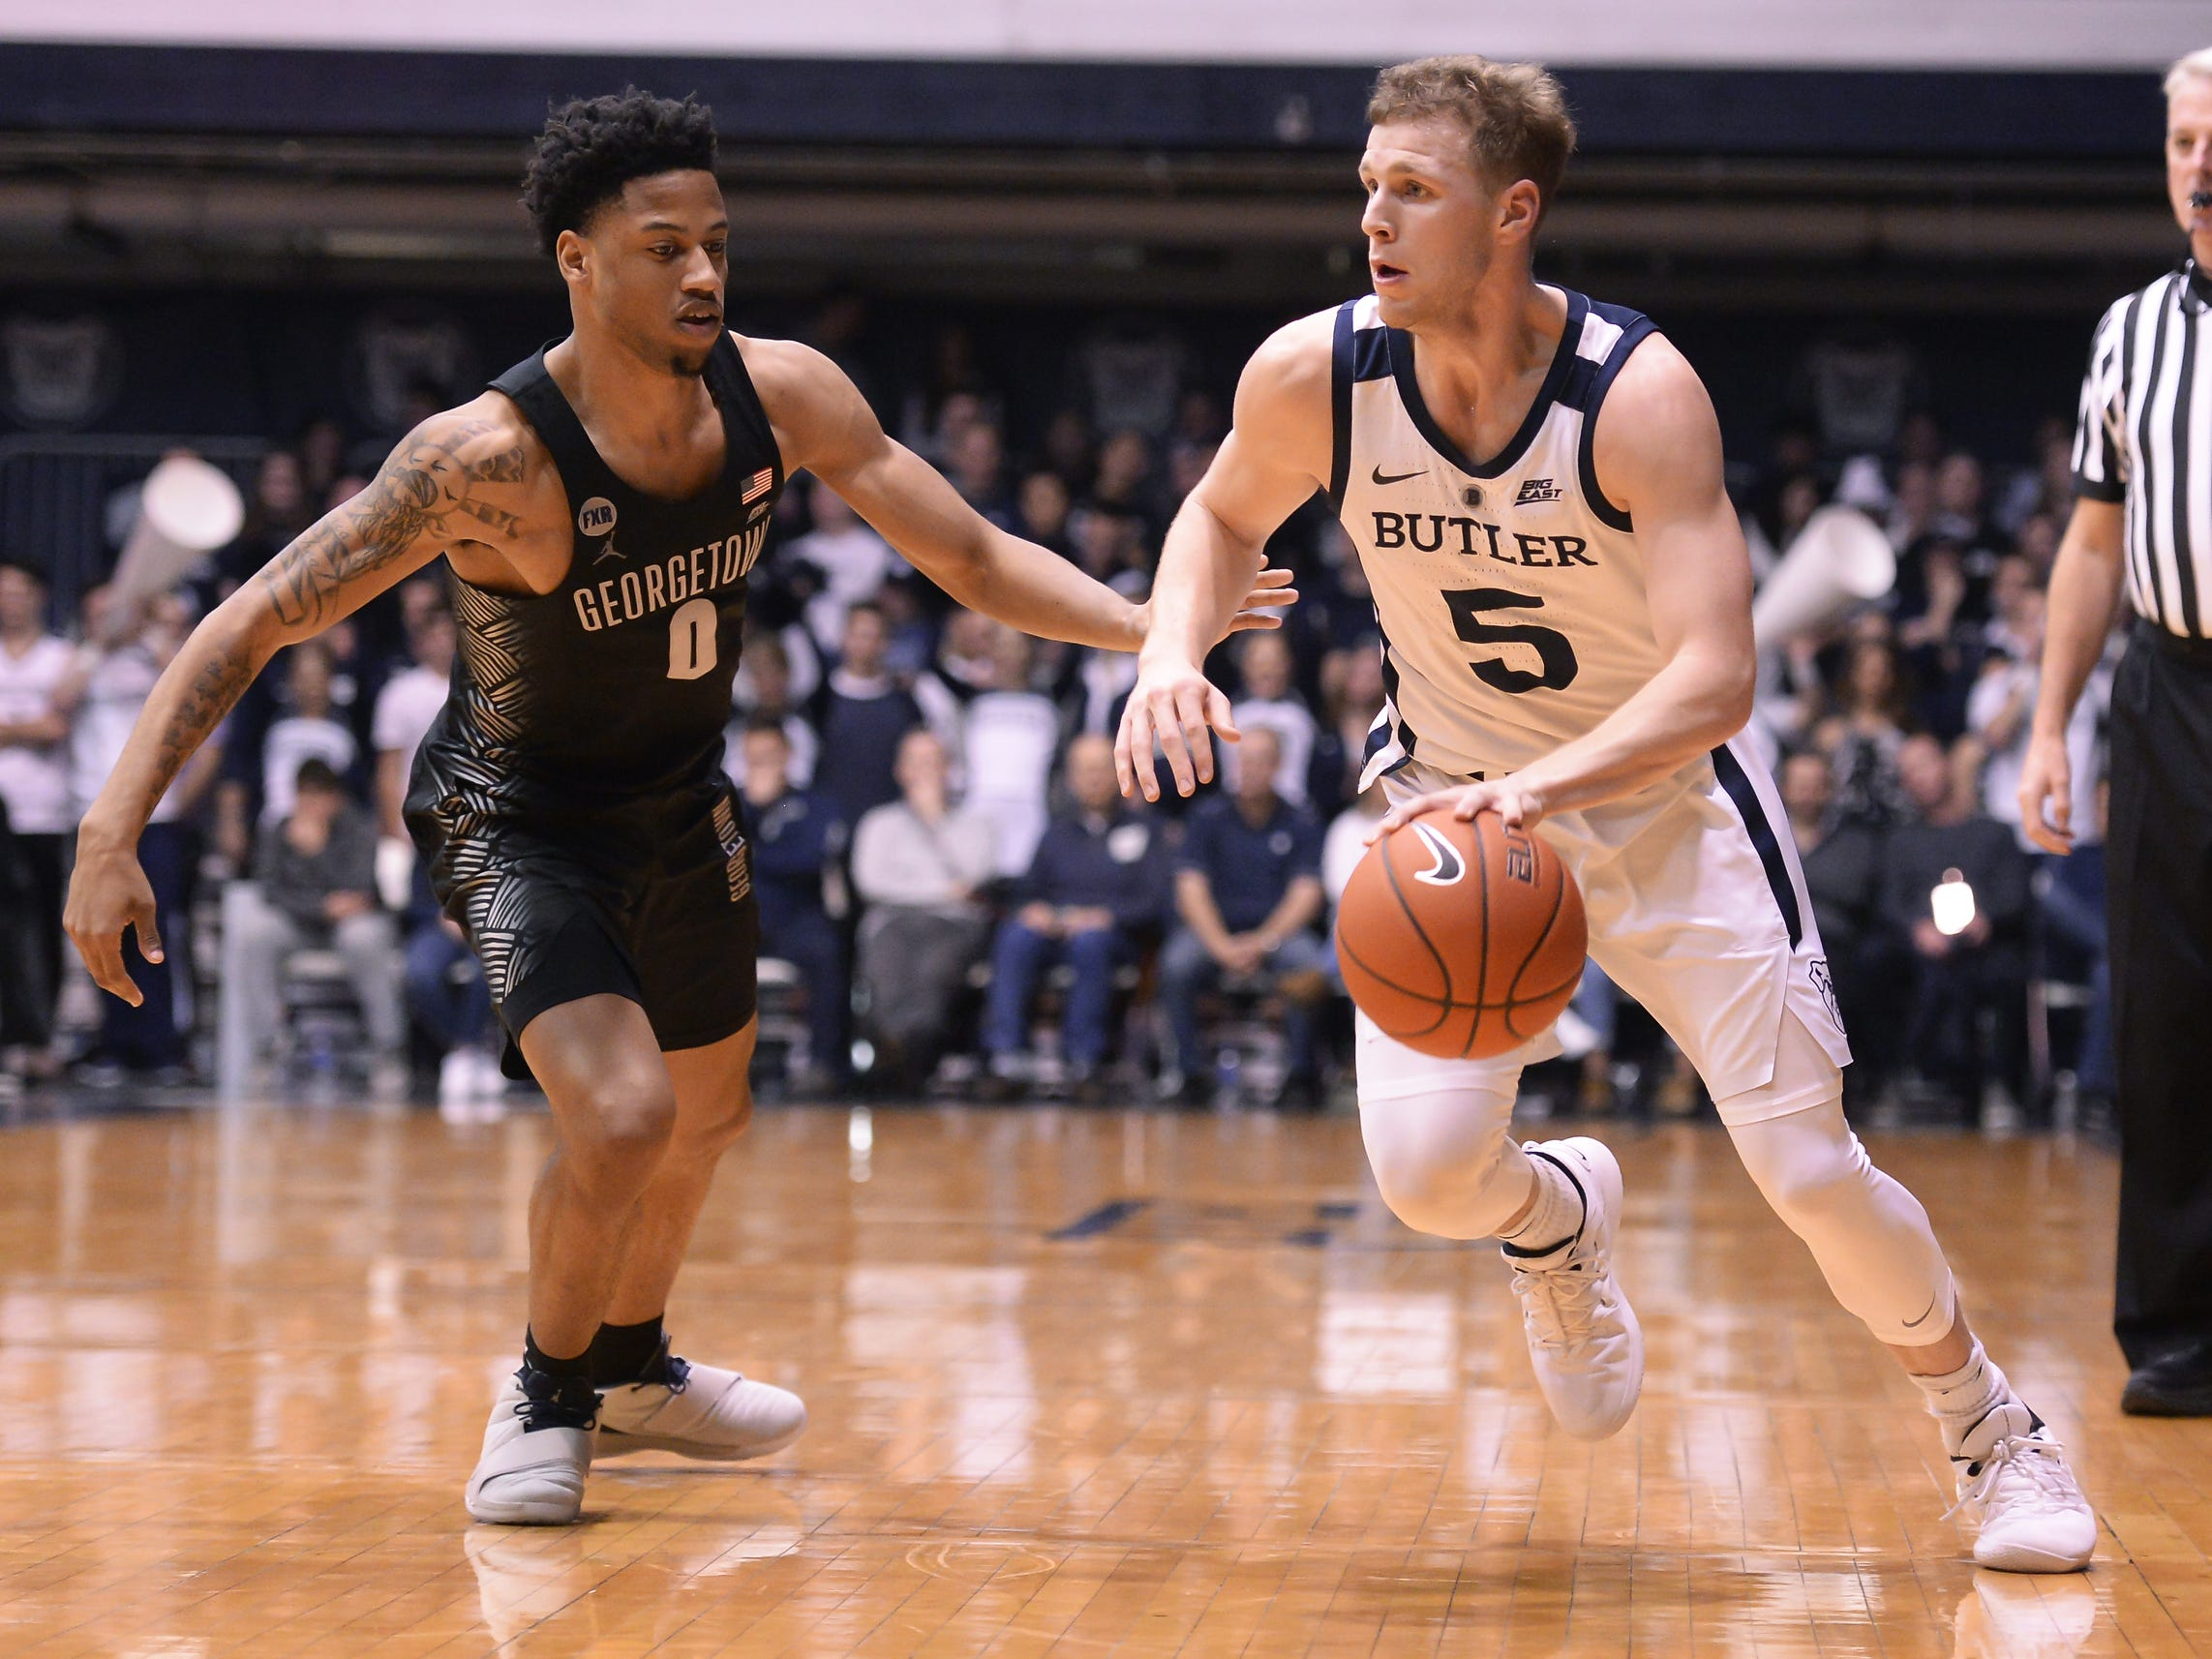 Butler Bulldogs guard Paul Jorgensen (5) carries the ball against Georgetown Hoyas guard Jahvon Blair (0) during the second half of game action between Butler University and Georgetown University, at Hinkle Fieldhouse in Indianapolis, Indiana on Wednesday, Jan. 2, 2019. The Butler Bulldogs fell to the Georgetown Hoyas 84-76.